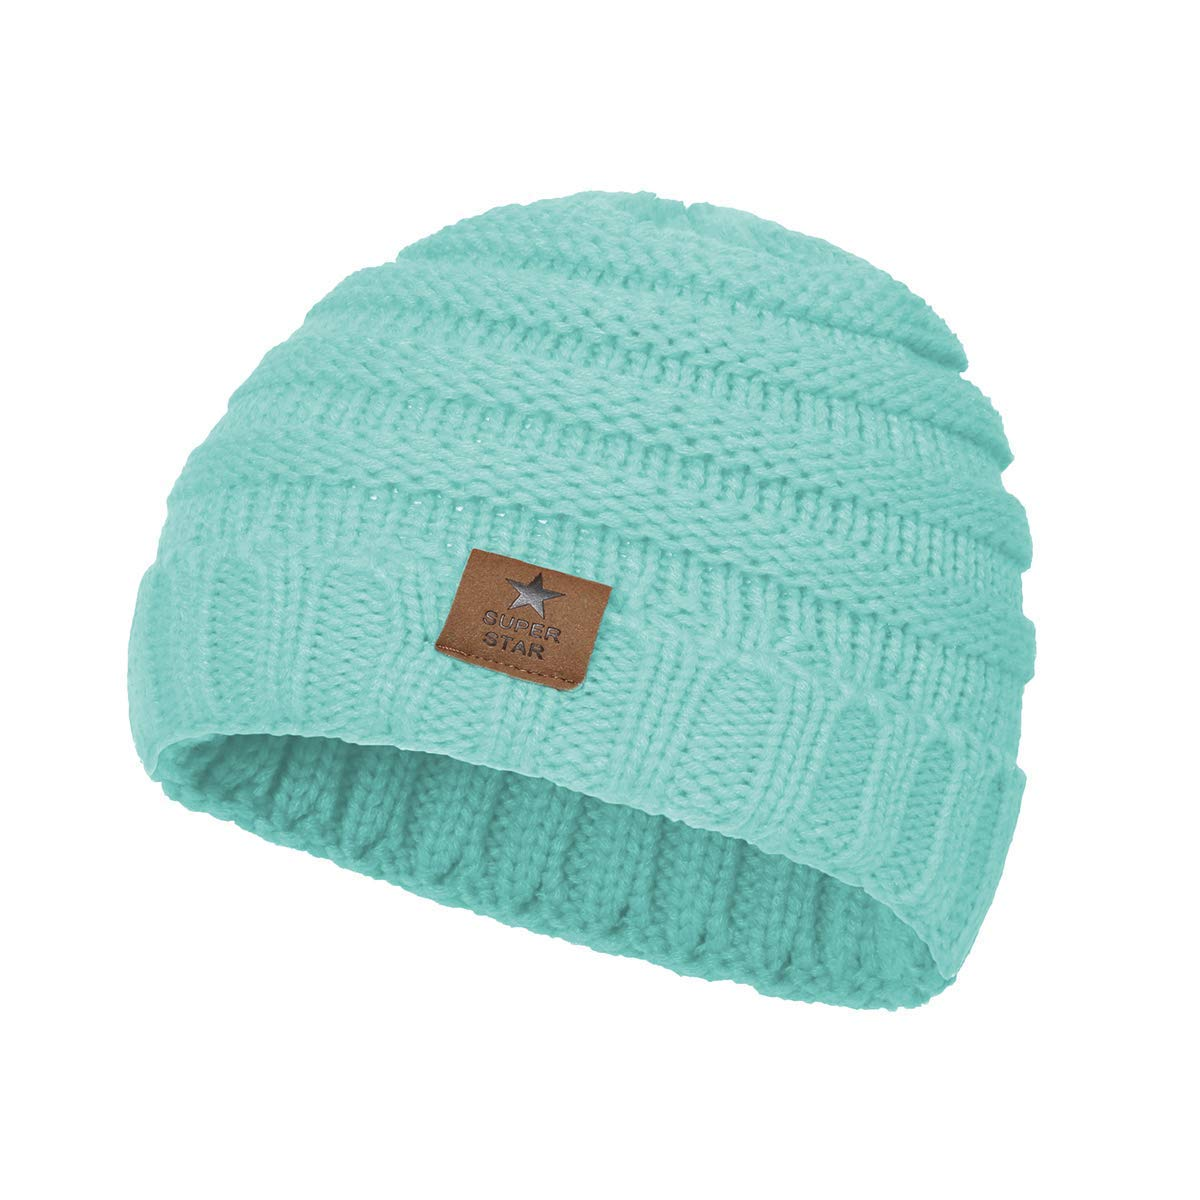 4e0e41a13 American Trends Infant Toddler Beanie Caps Baby Kids Winter Knit ...